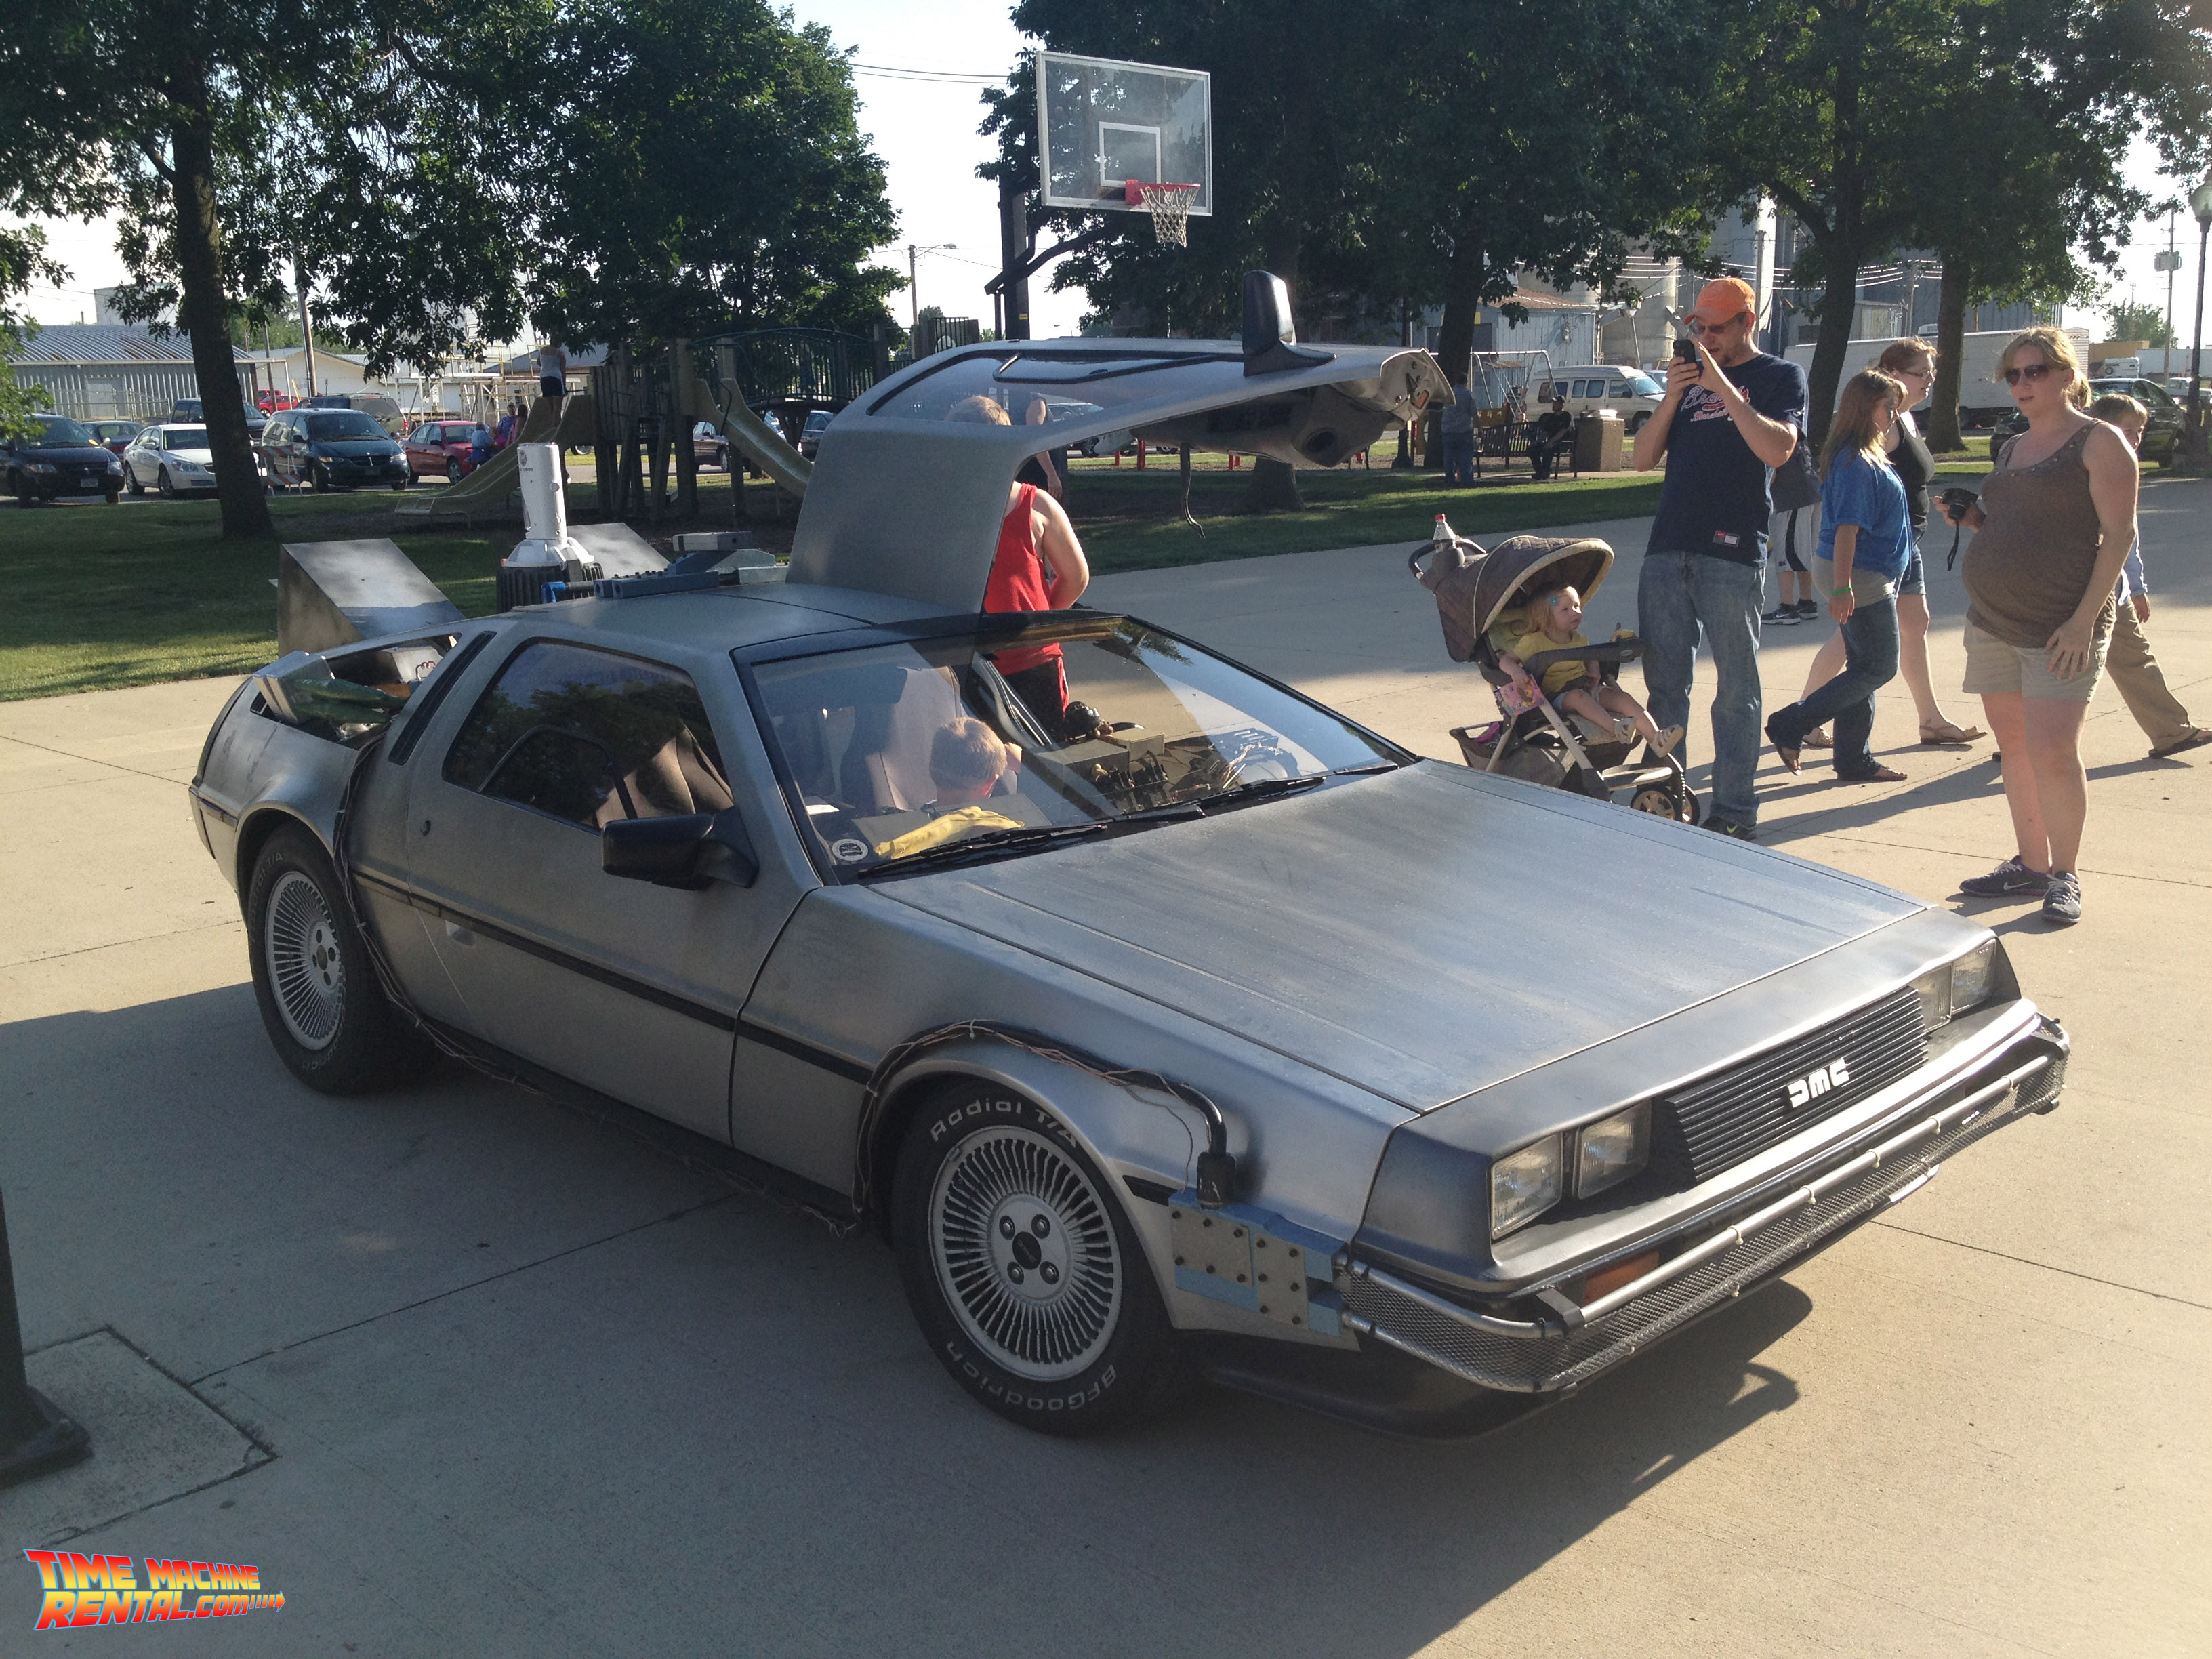 Back to the future and enjoy the magical interior and exterior